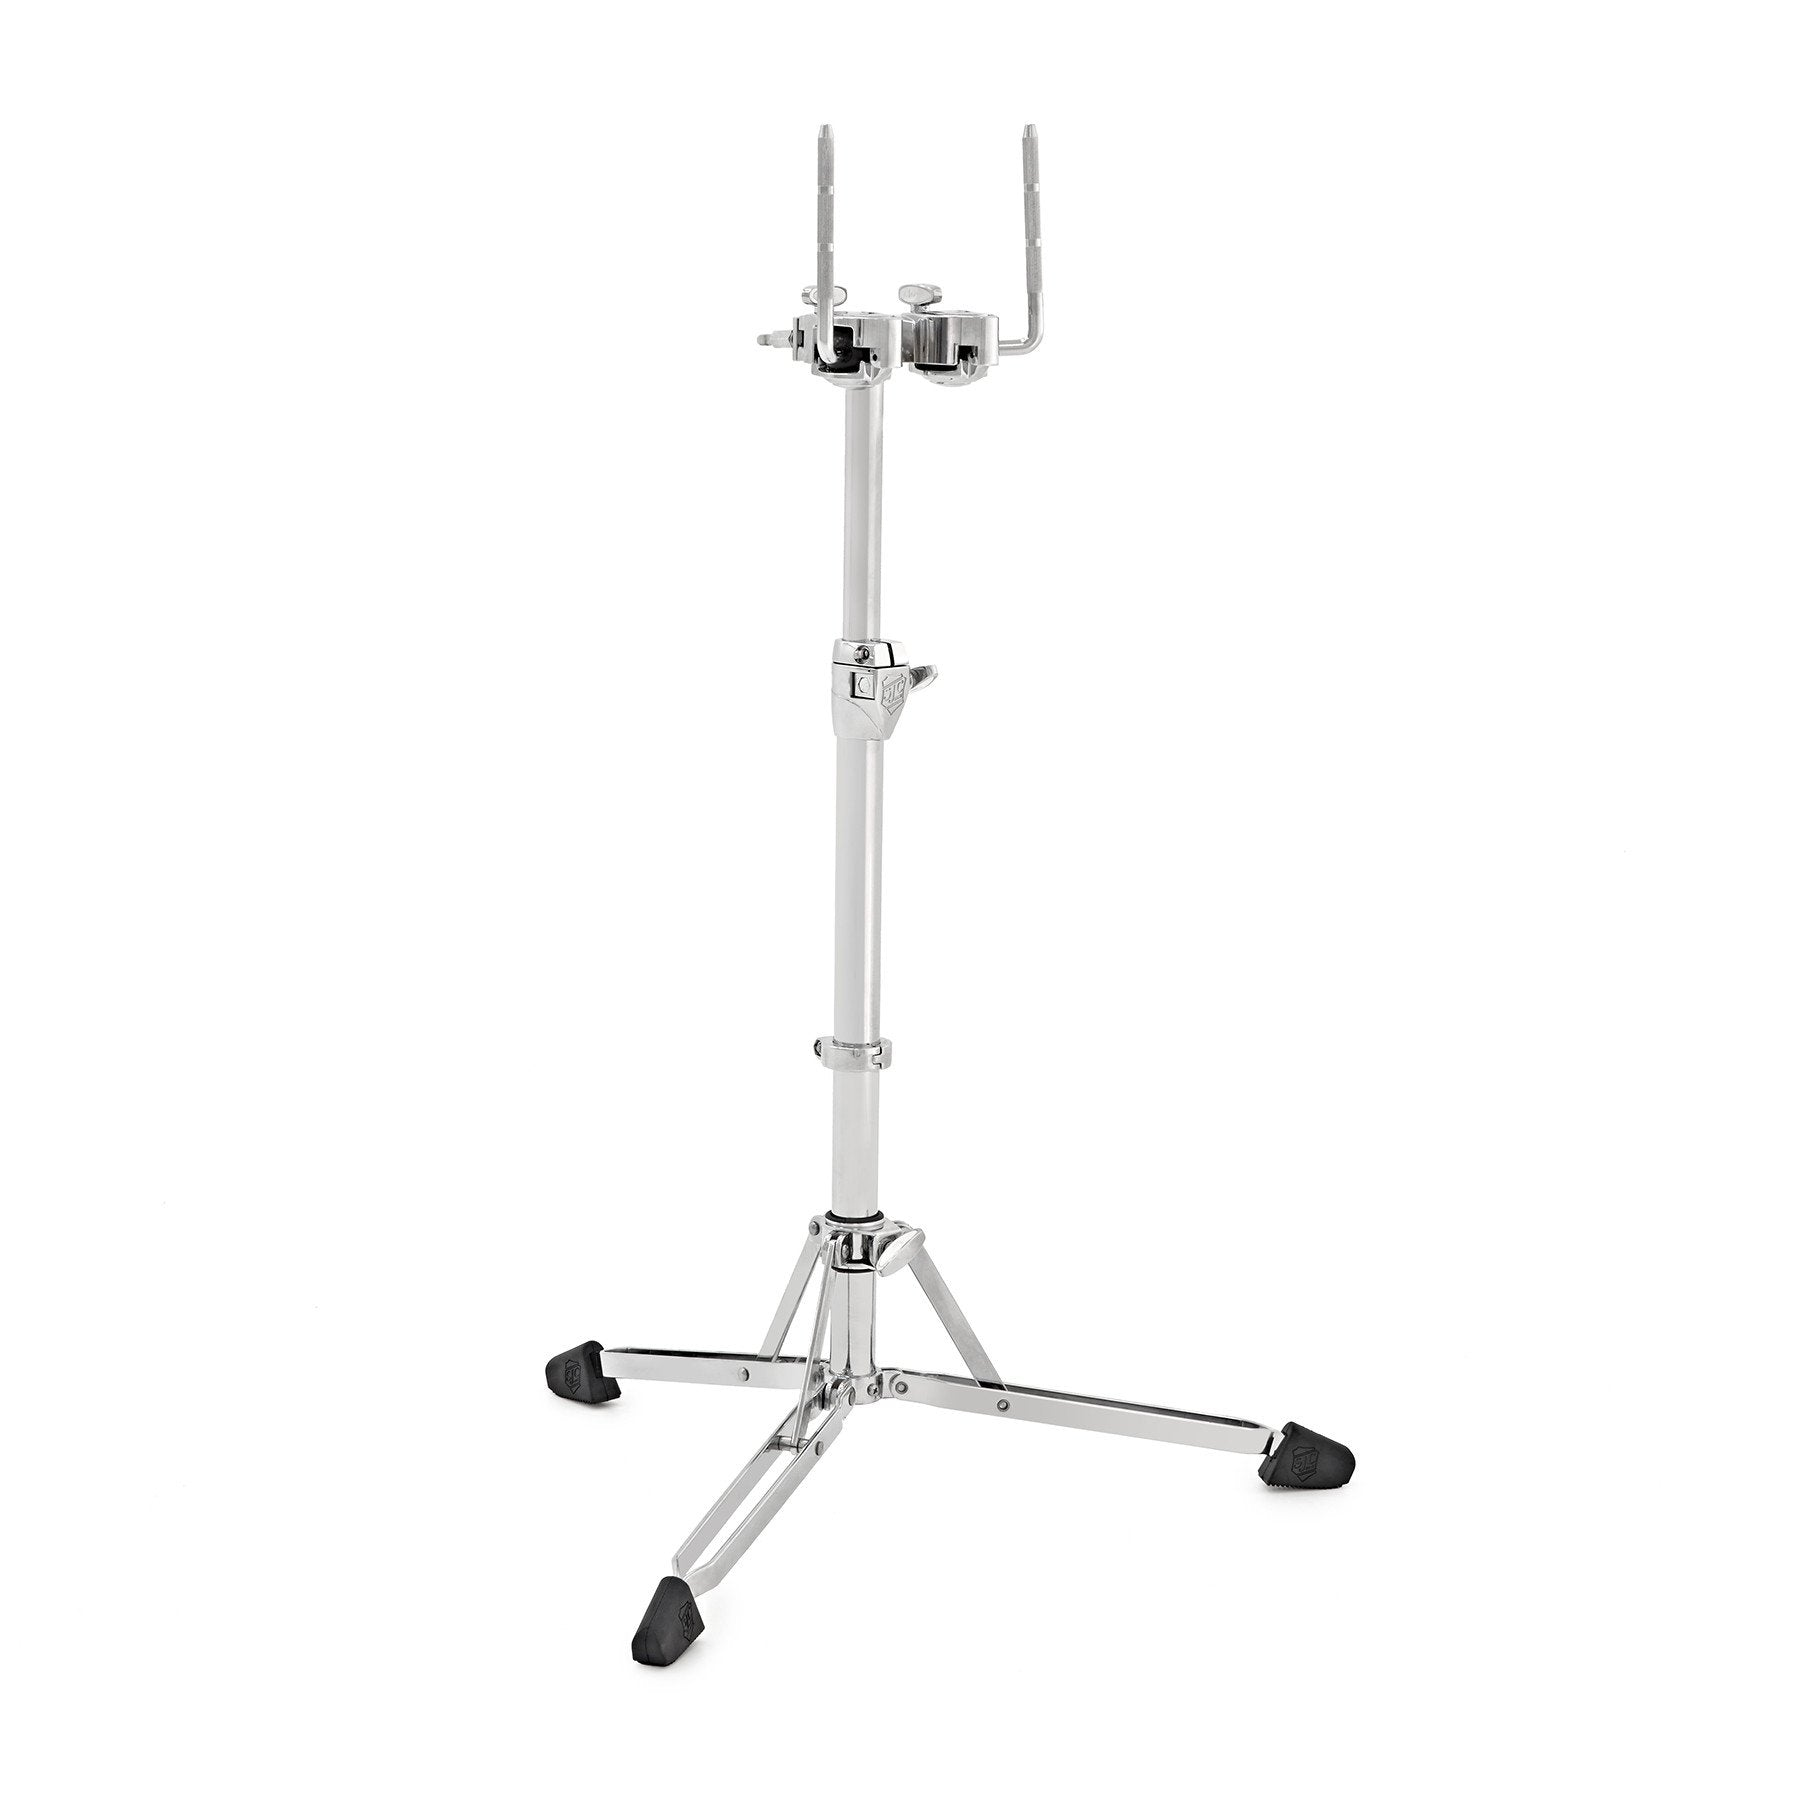 SJC Custom Drums Heavy Duty Double Braced Foundation Hardware Flatline Double Tom Stand